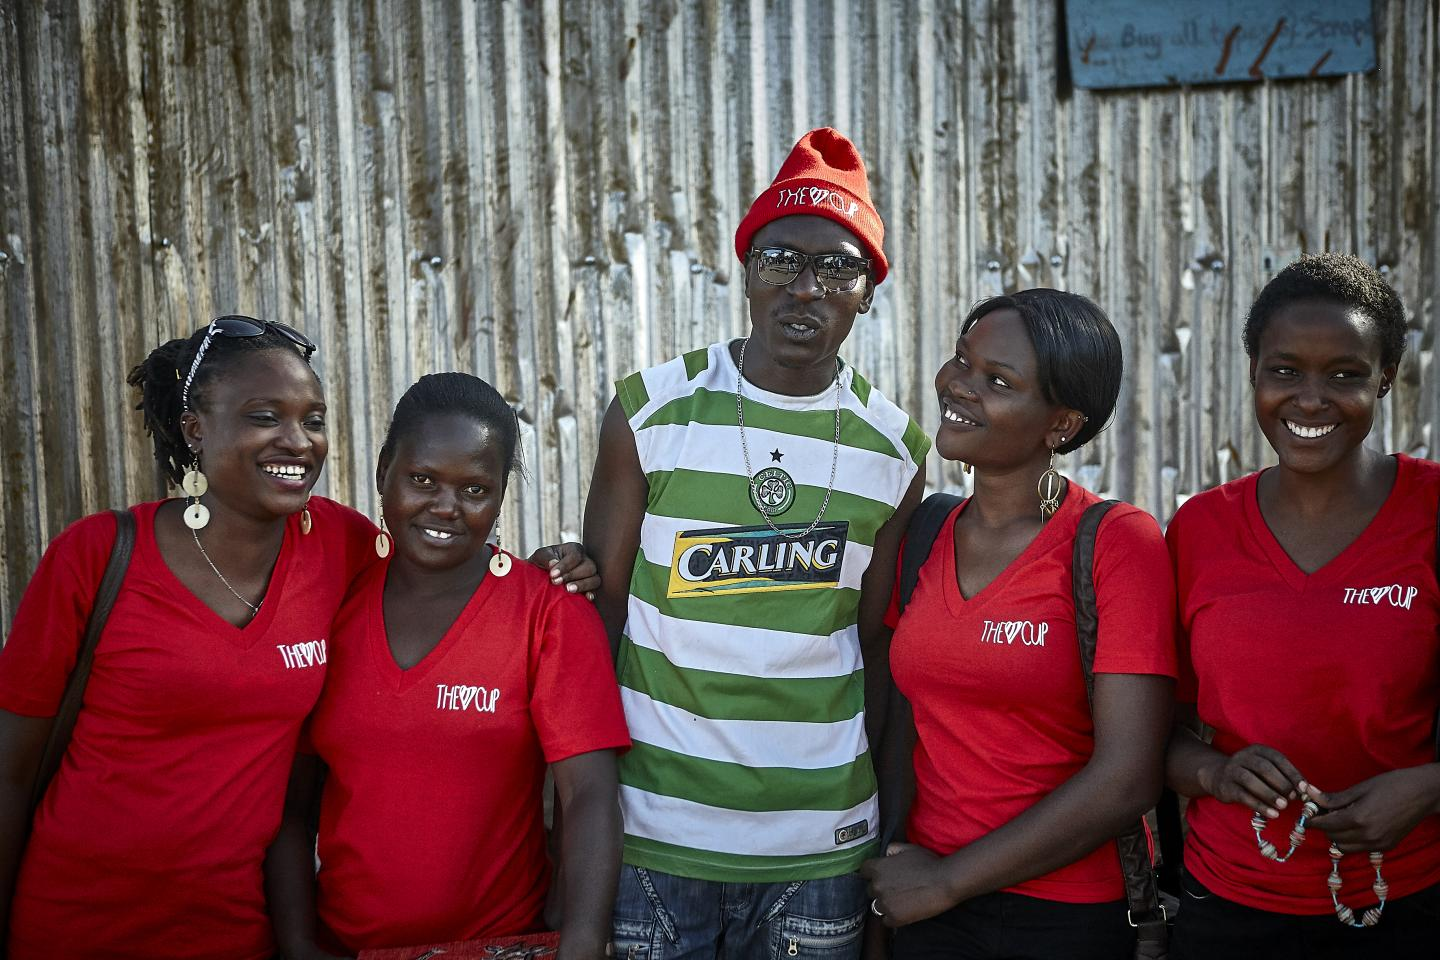 Joshua Omanya, center, is an educator with The Cup program who teaches boys in the Kibera slum in Nairobi, Kenya, about menstruation and gender equality.